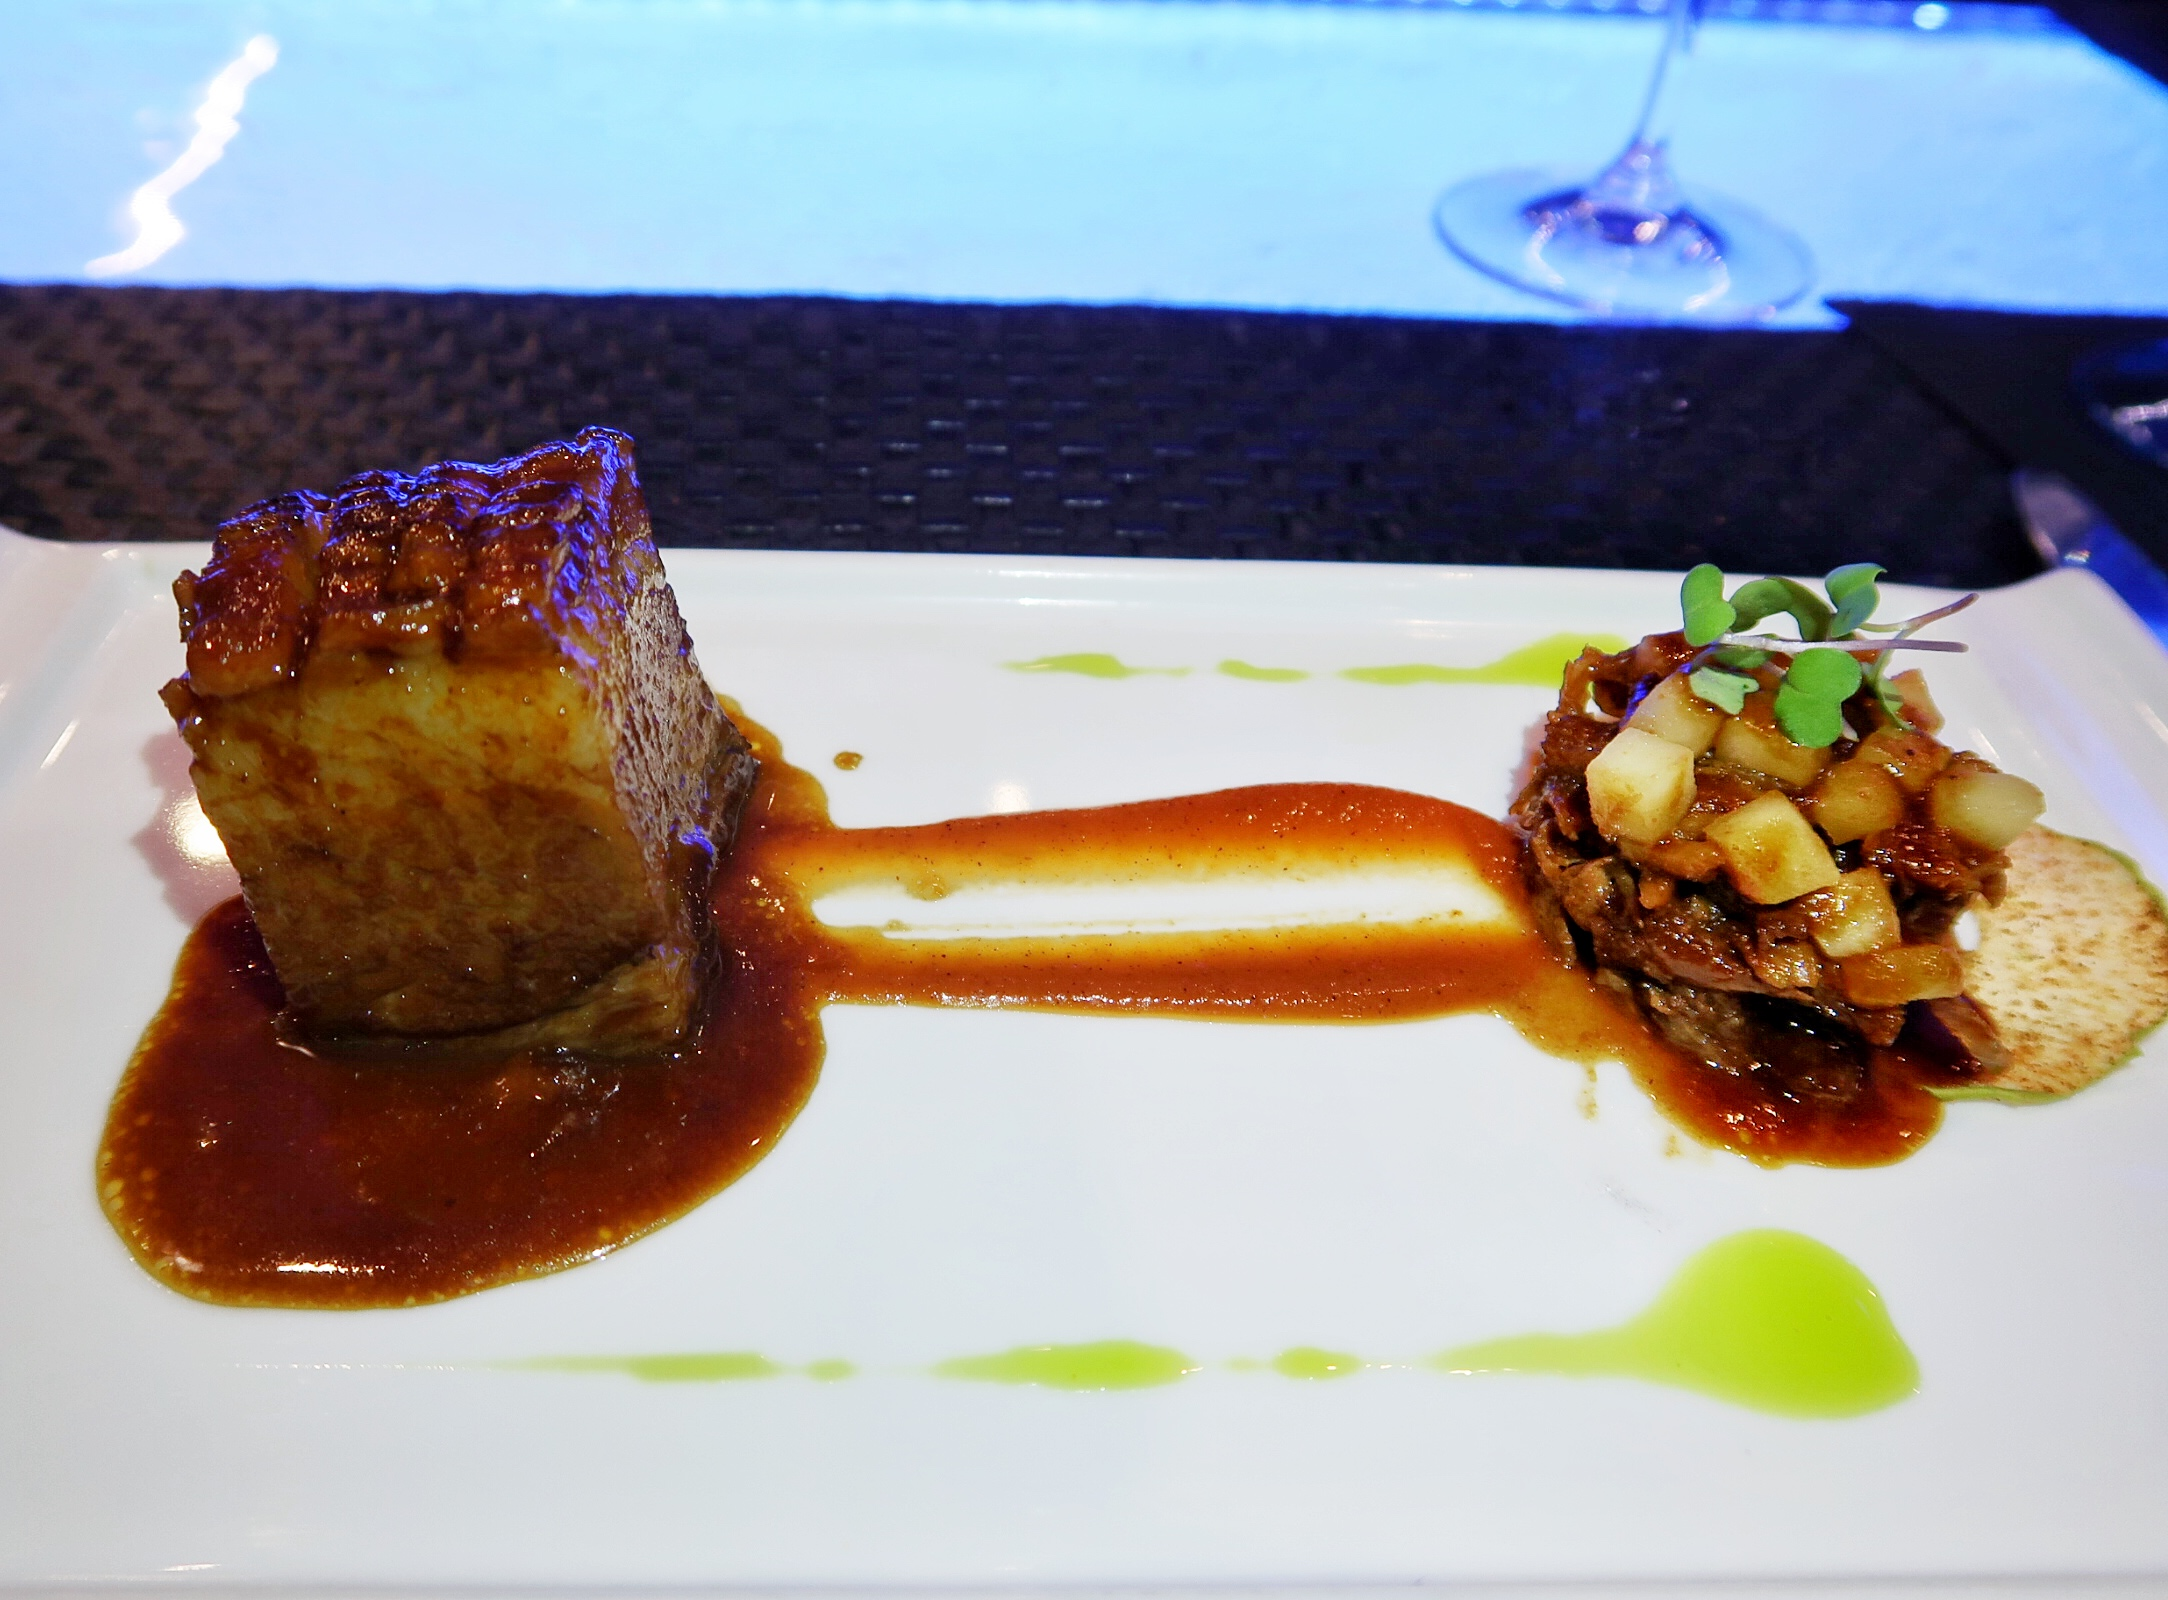 Pork Two Ways:  Braised pork belly in a guava marinade and pulled baby back ribs in a vindaloo sauce and apple chutney